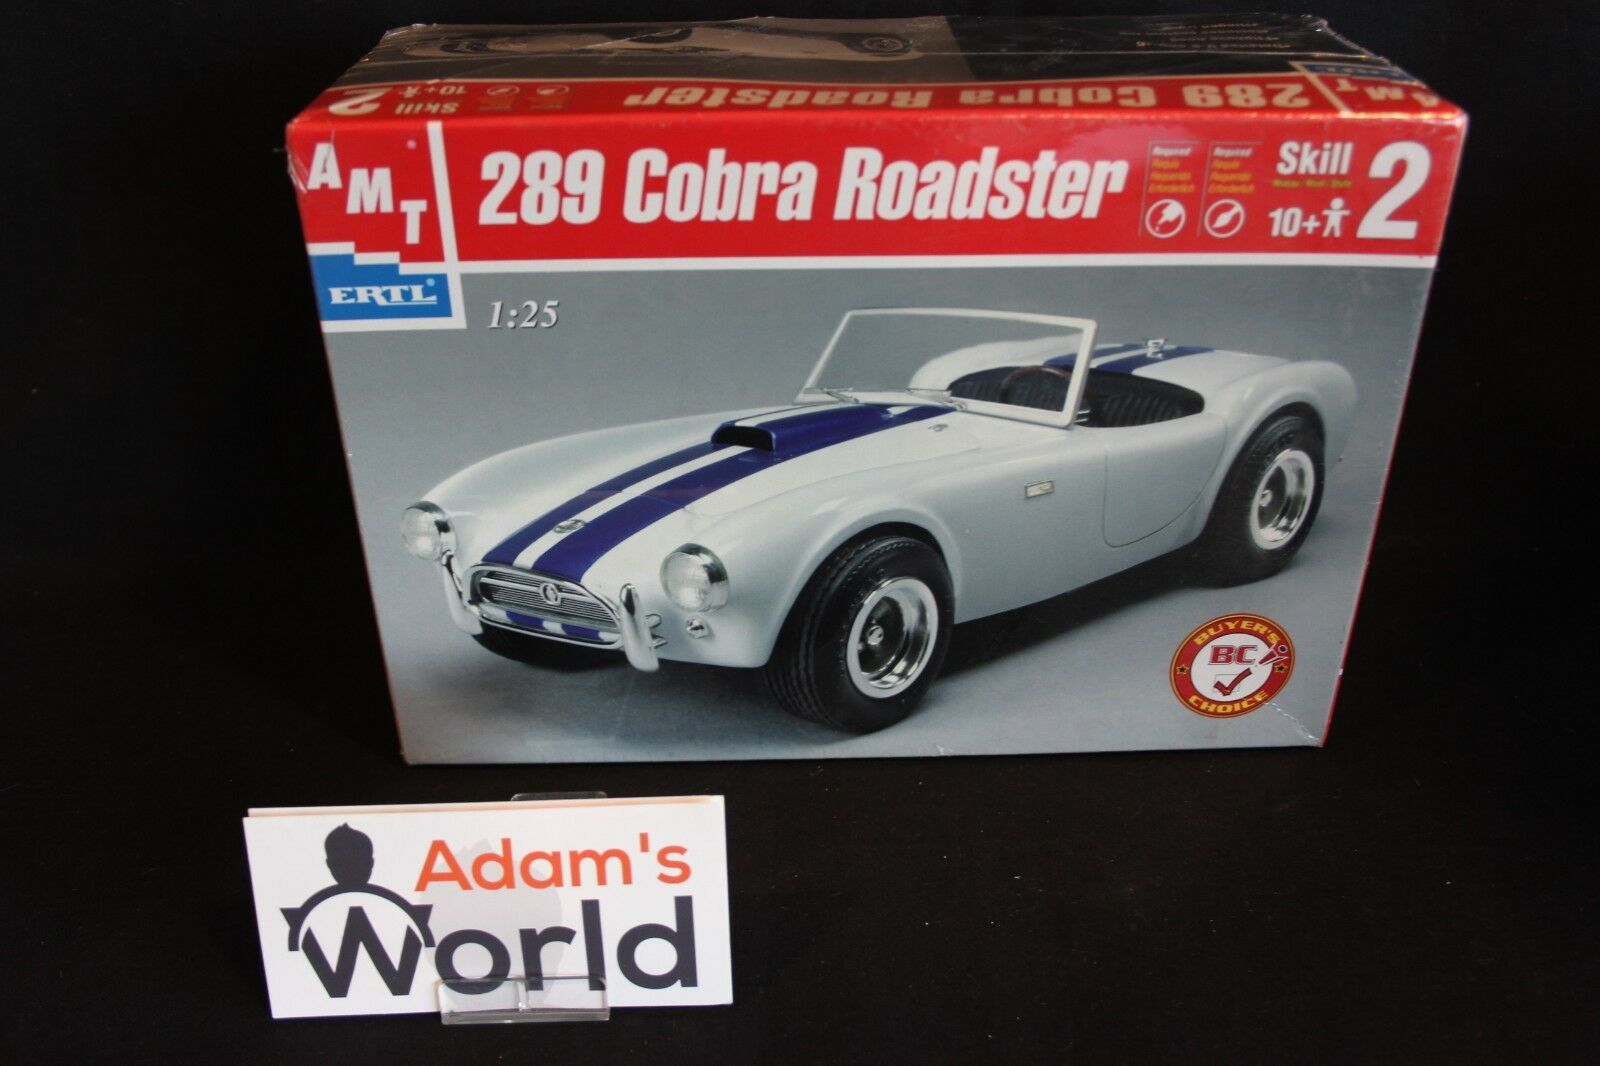 AMT kit Shelby Cobra Roadster 289 1 25 white with bluee stripes (MG1)